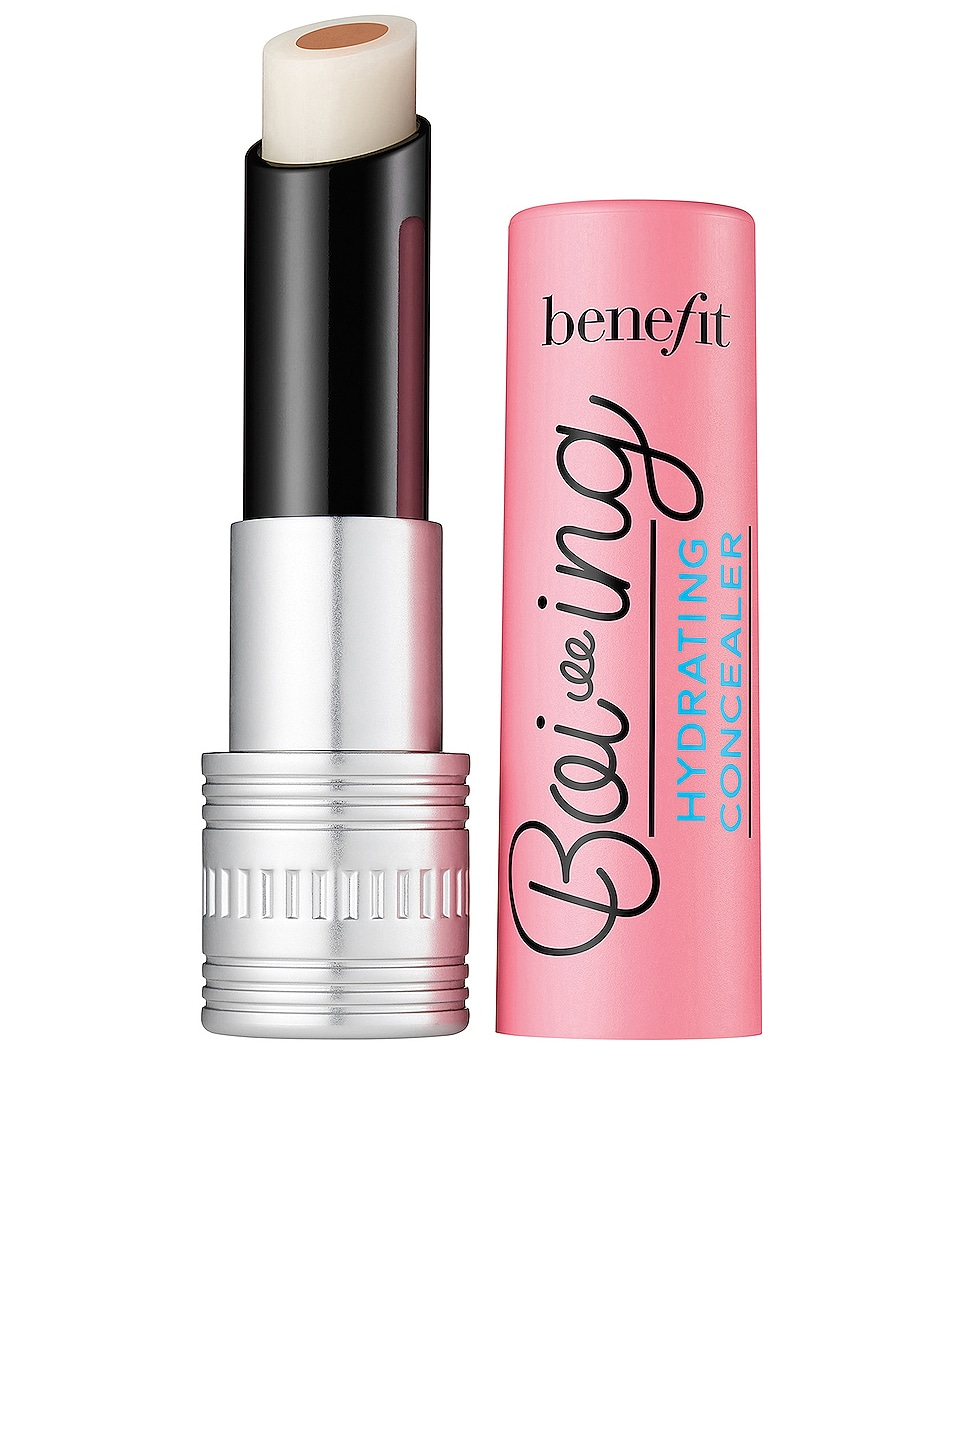 Benefit Cosmetics CORRECTOR BOI-ING HYDRATING